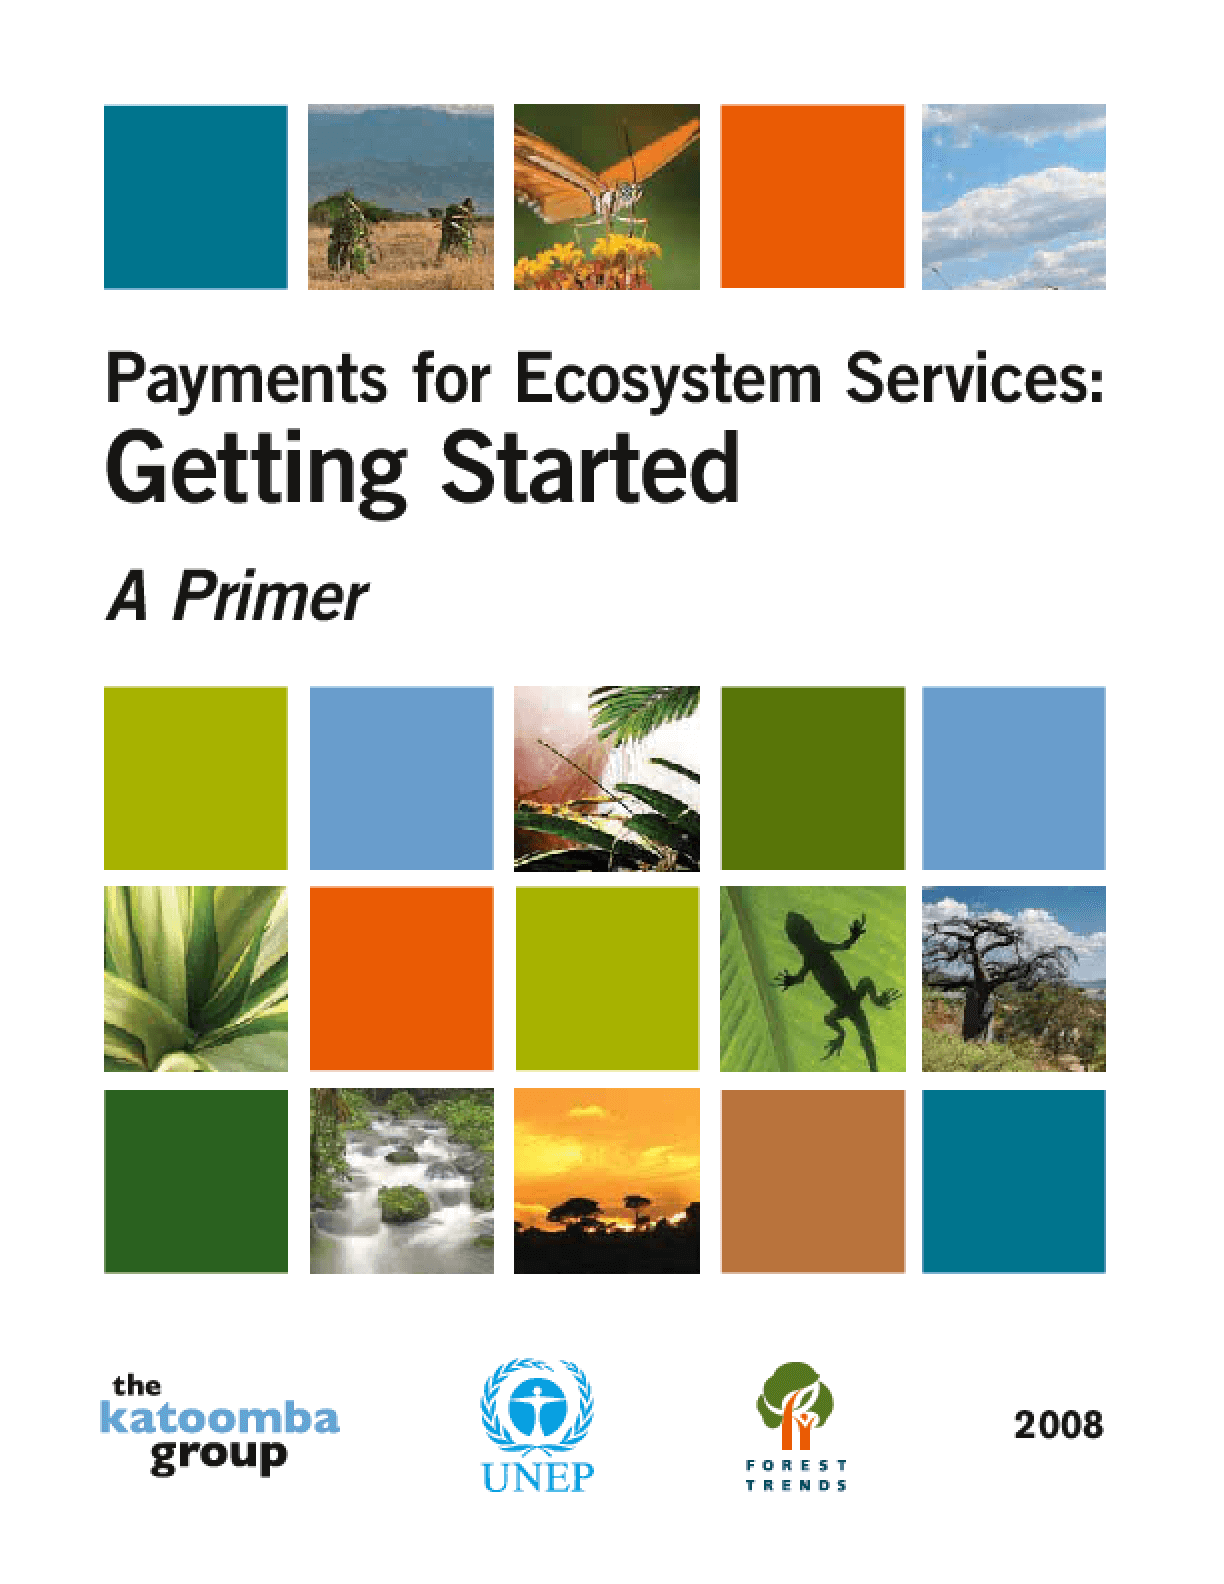 Payments for Ecosystem Services Getting Started, A Primer